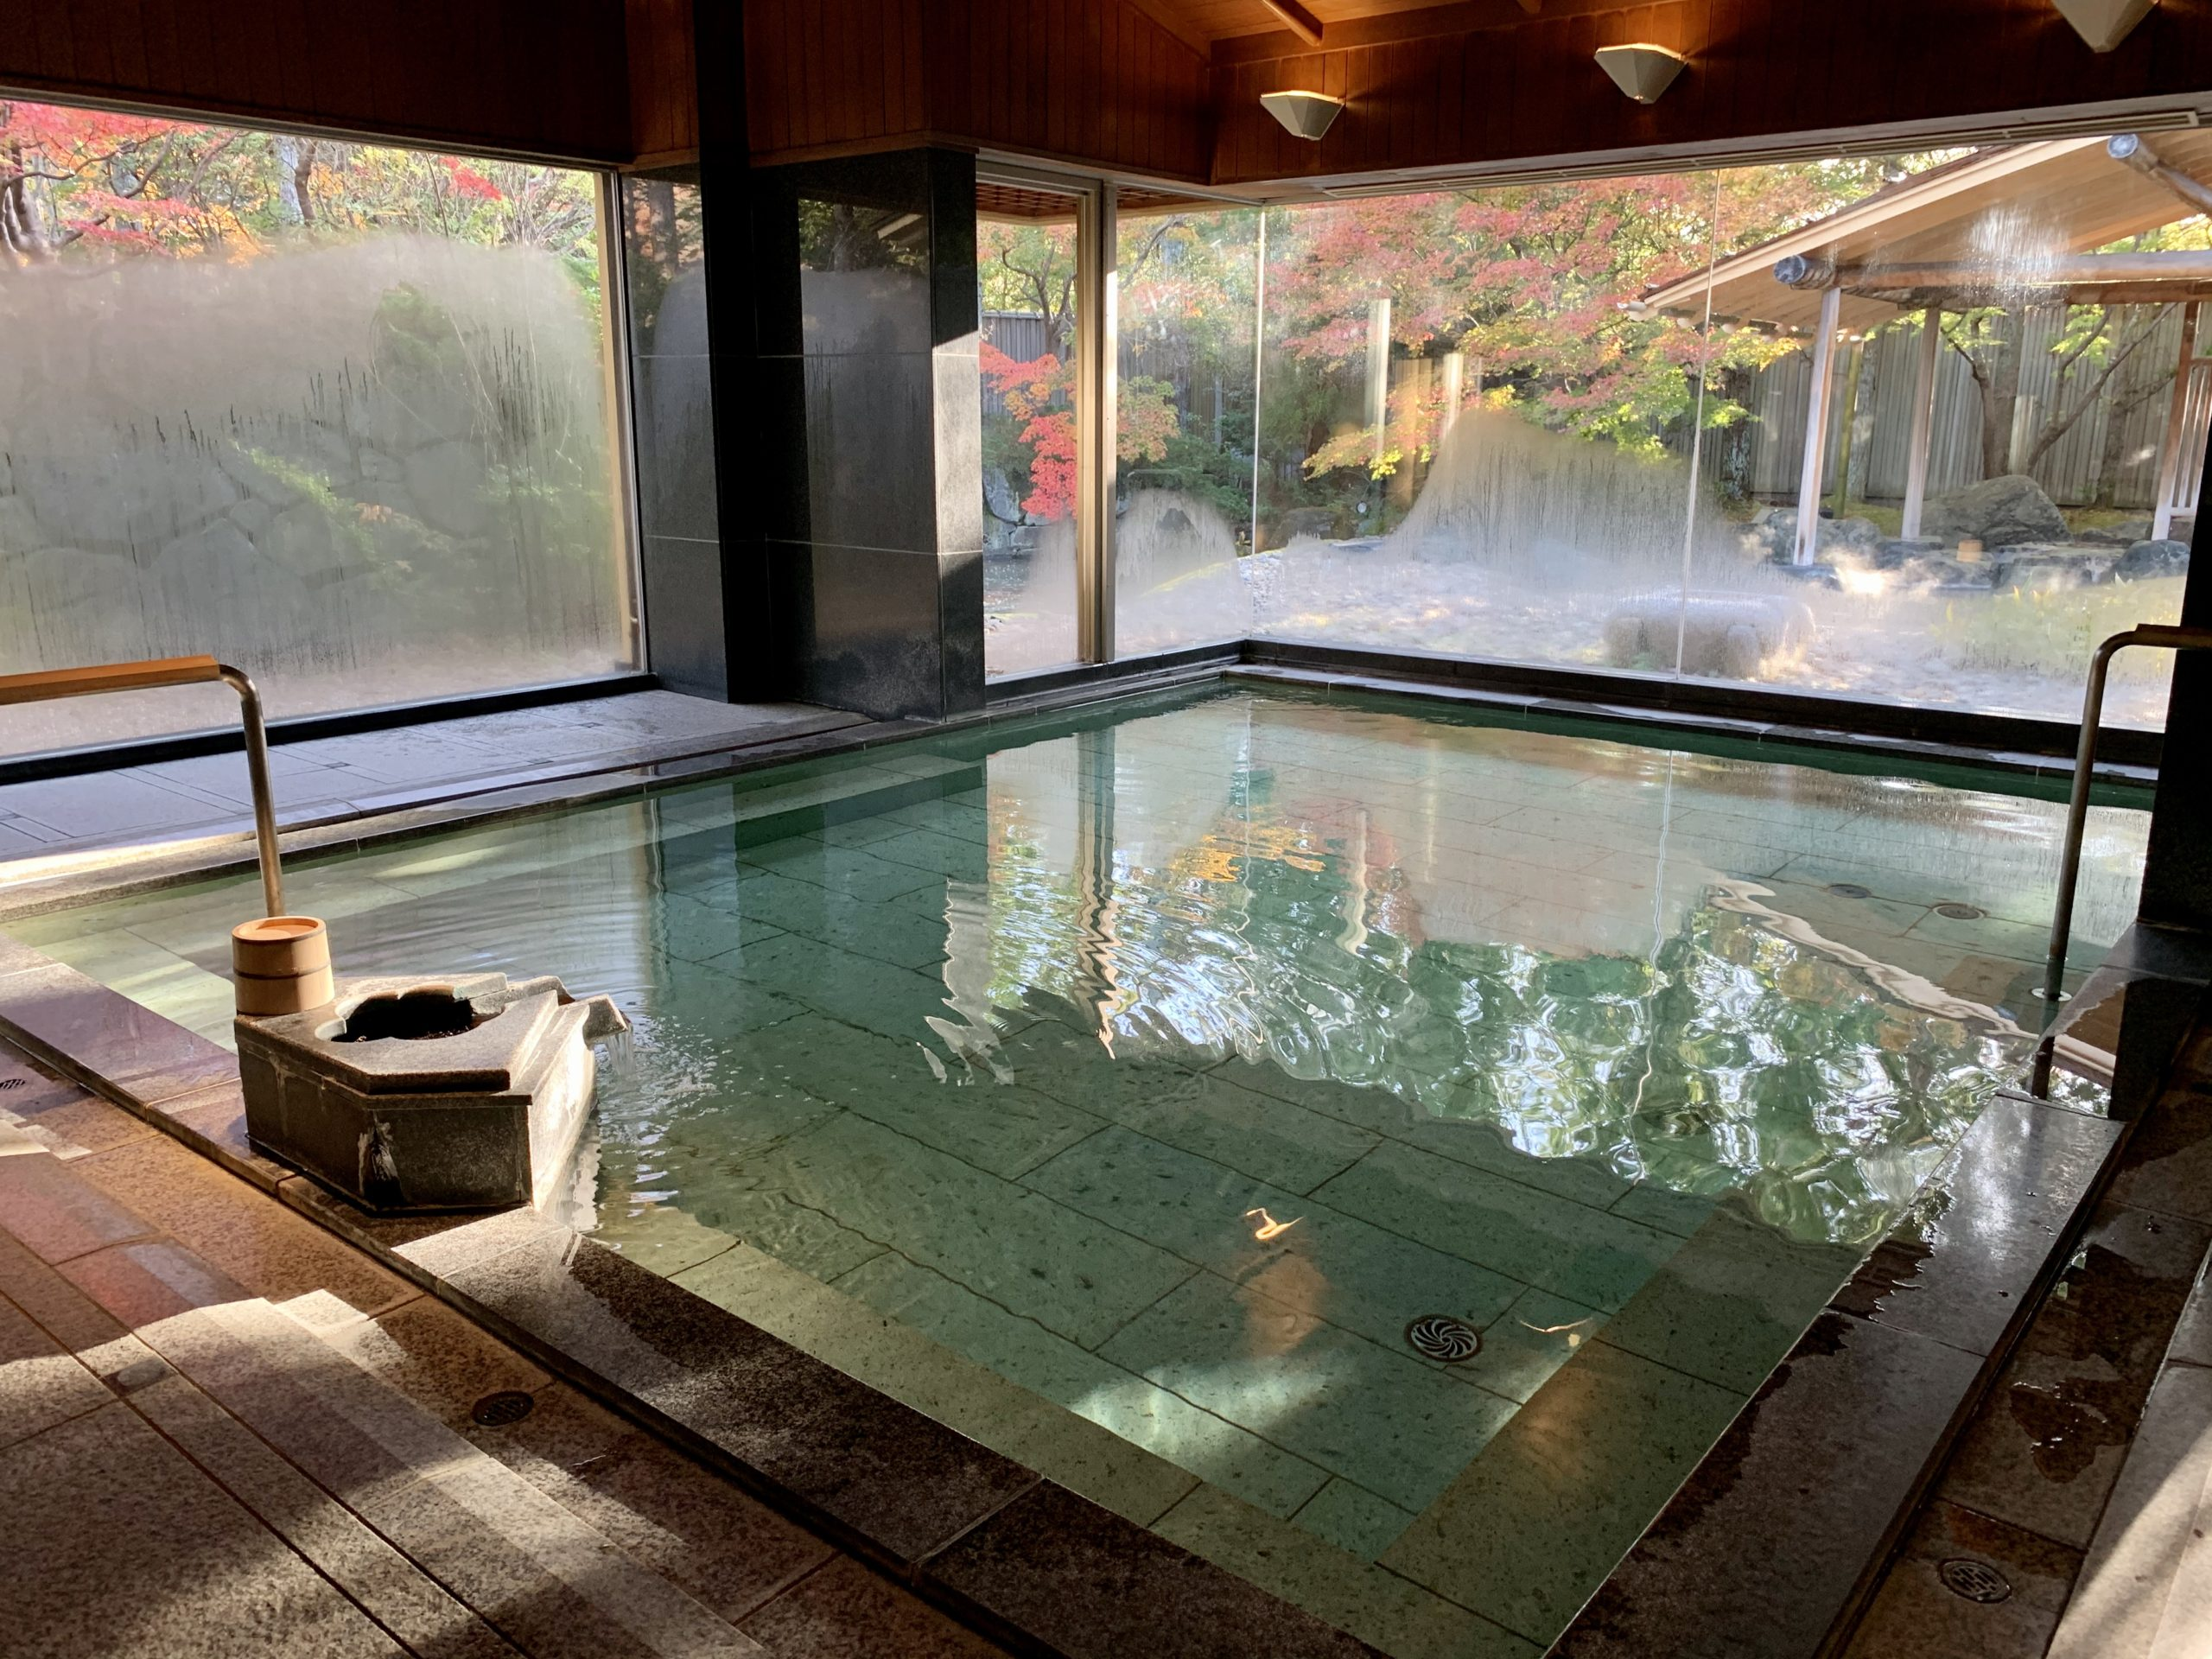 Saryo Soen is a traditional ryokan with beautiful grounds and facilities. One of its onsen is seen here. Photo by Carrie Coolidge